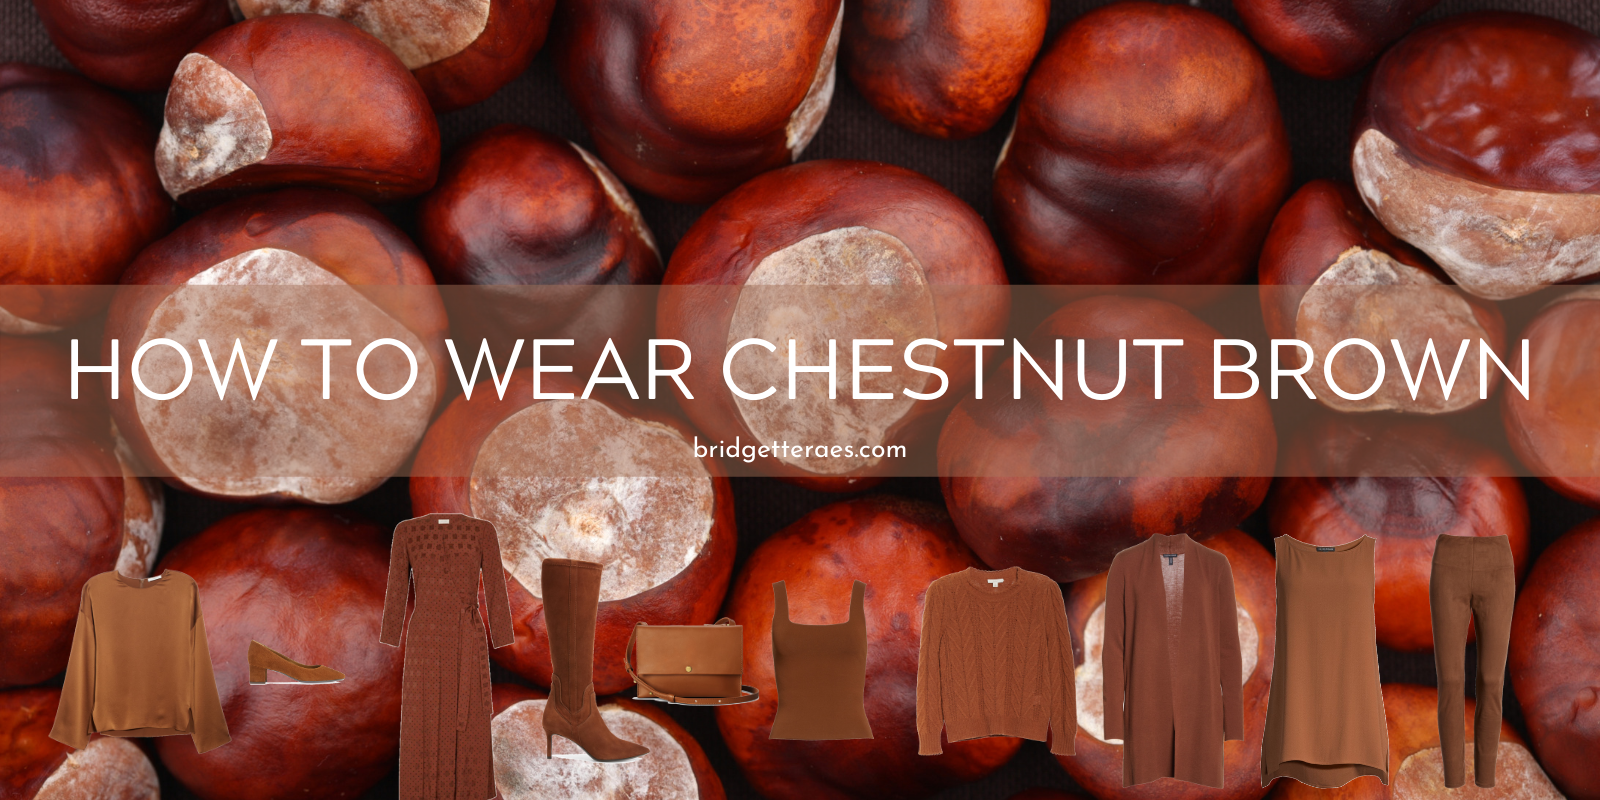 How to Wear Chestnut Brown